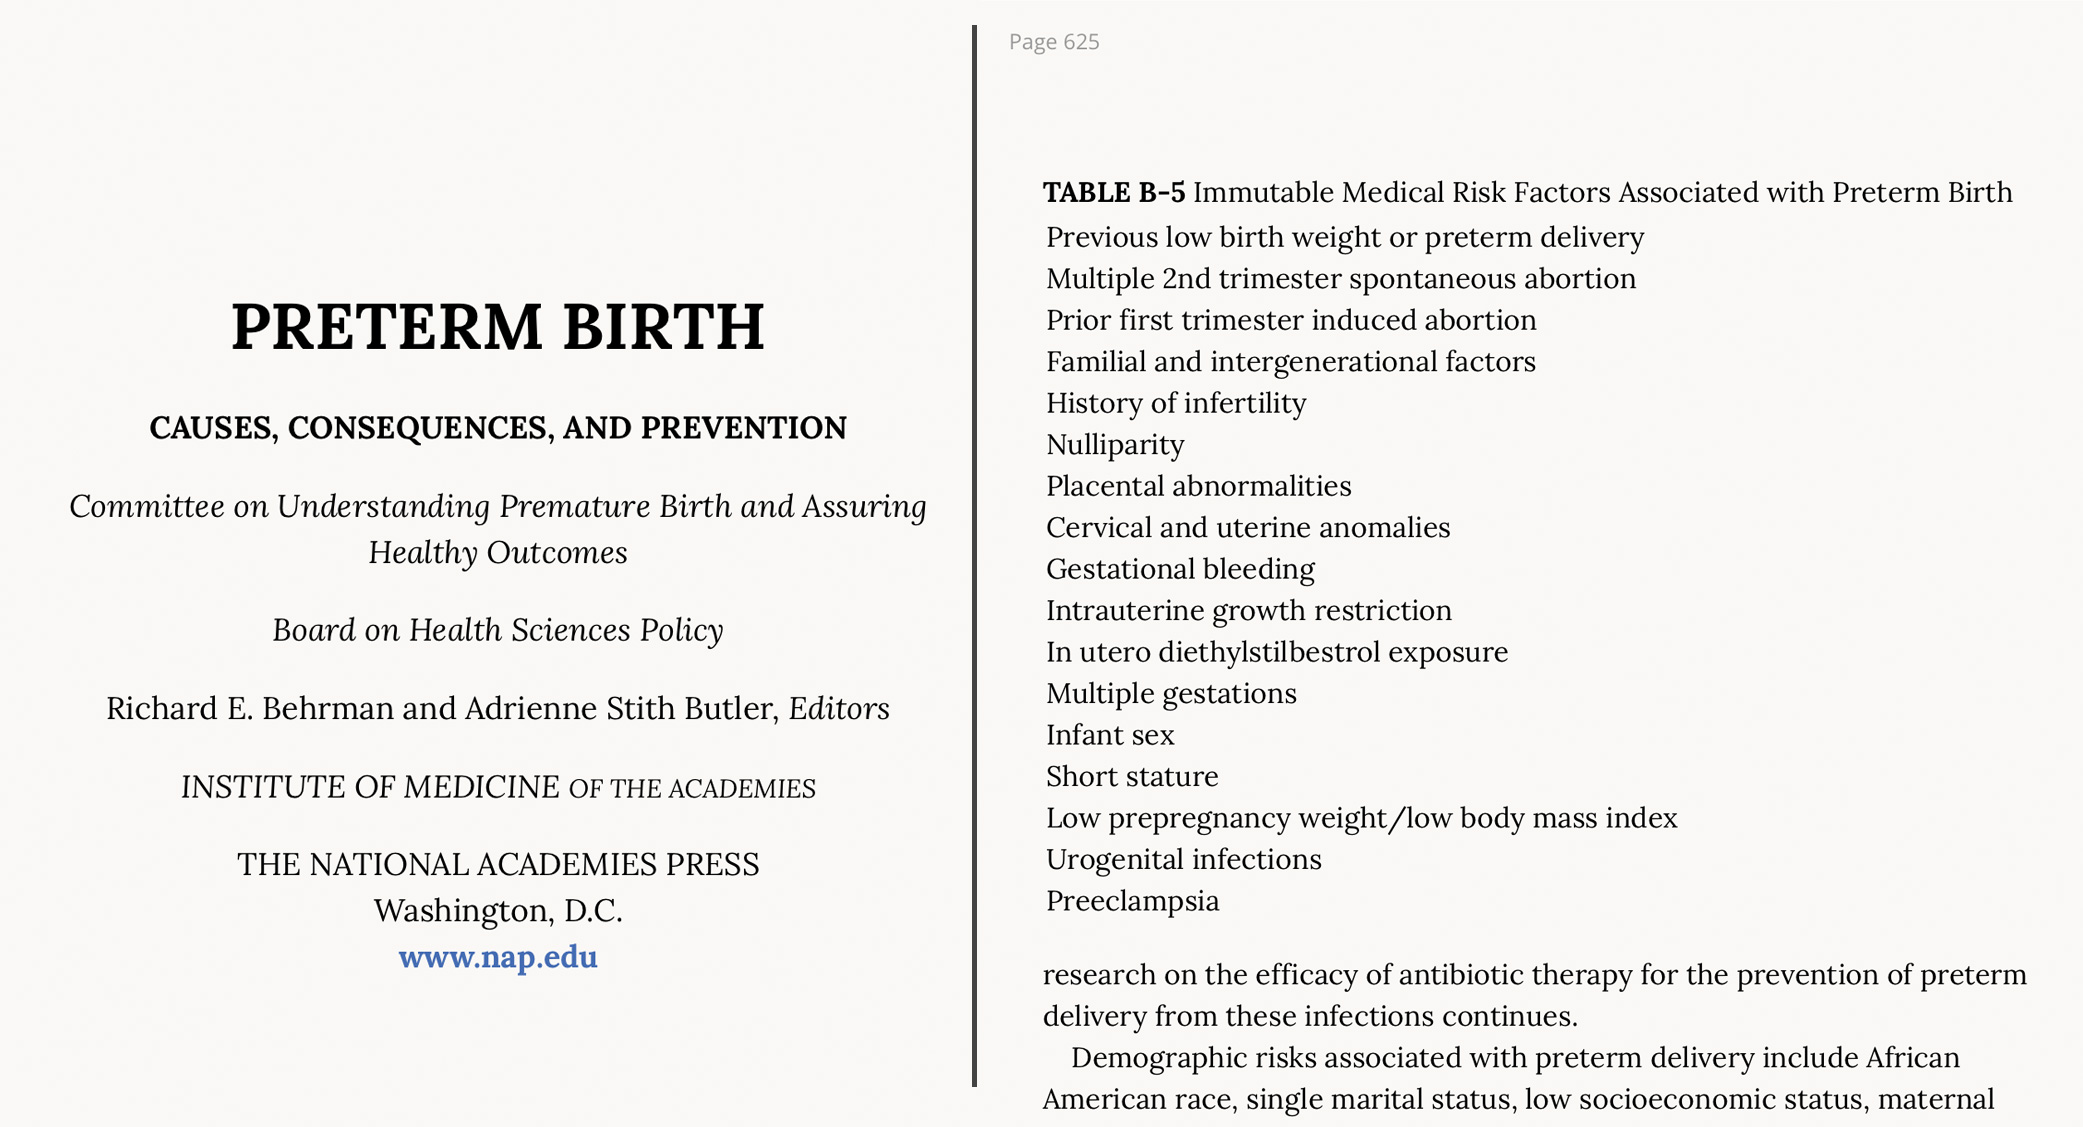 Institute of Medicine - Preterm Births and Induced Abortion